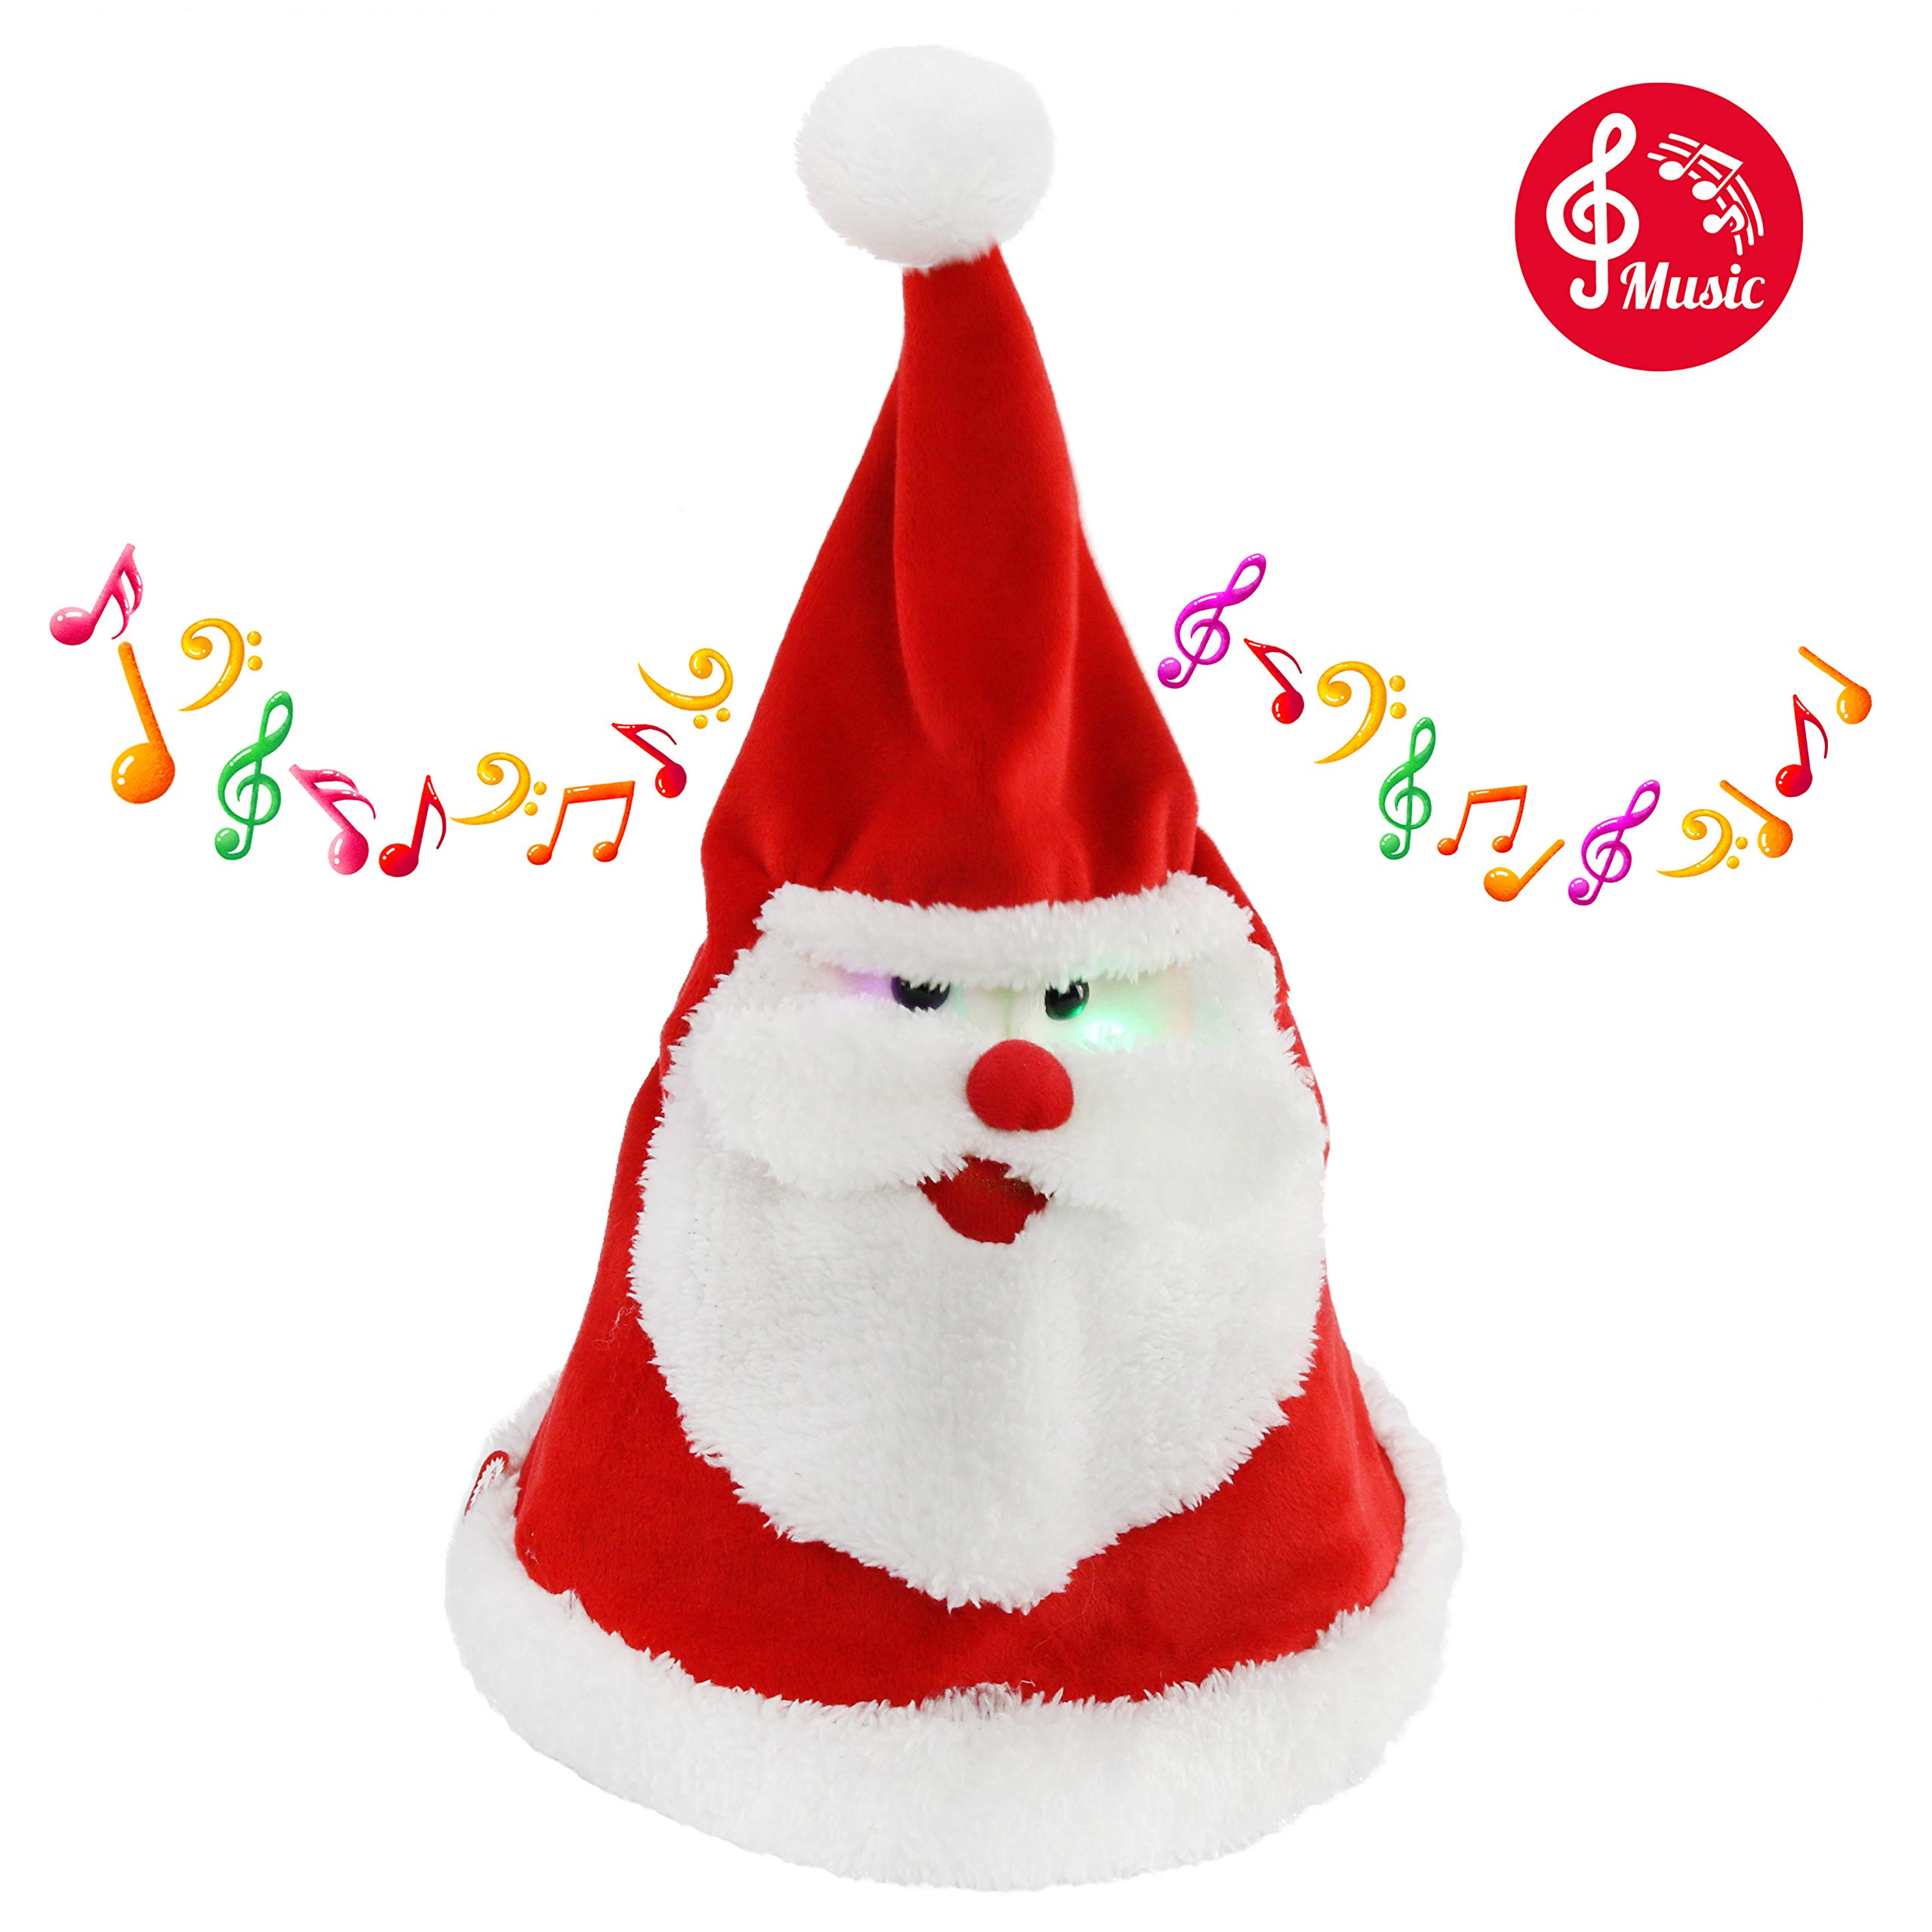 Houwsbaby Glowing Dancing Singing Santa Hat Christmas Interactive Toys with Music Electronic Animated Cap Sing a Song 'Jingle Bell' Funny Xmas Gift for Kids Girls Boys Adults, Red, 14.5'' (Hat)